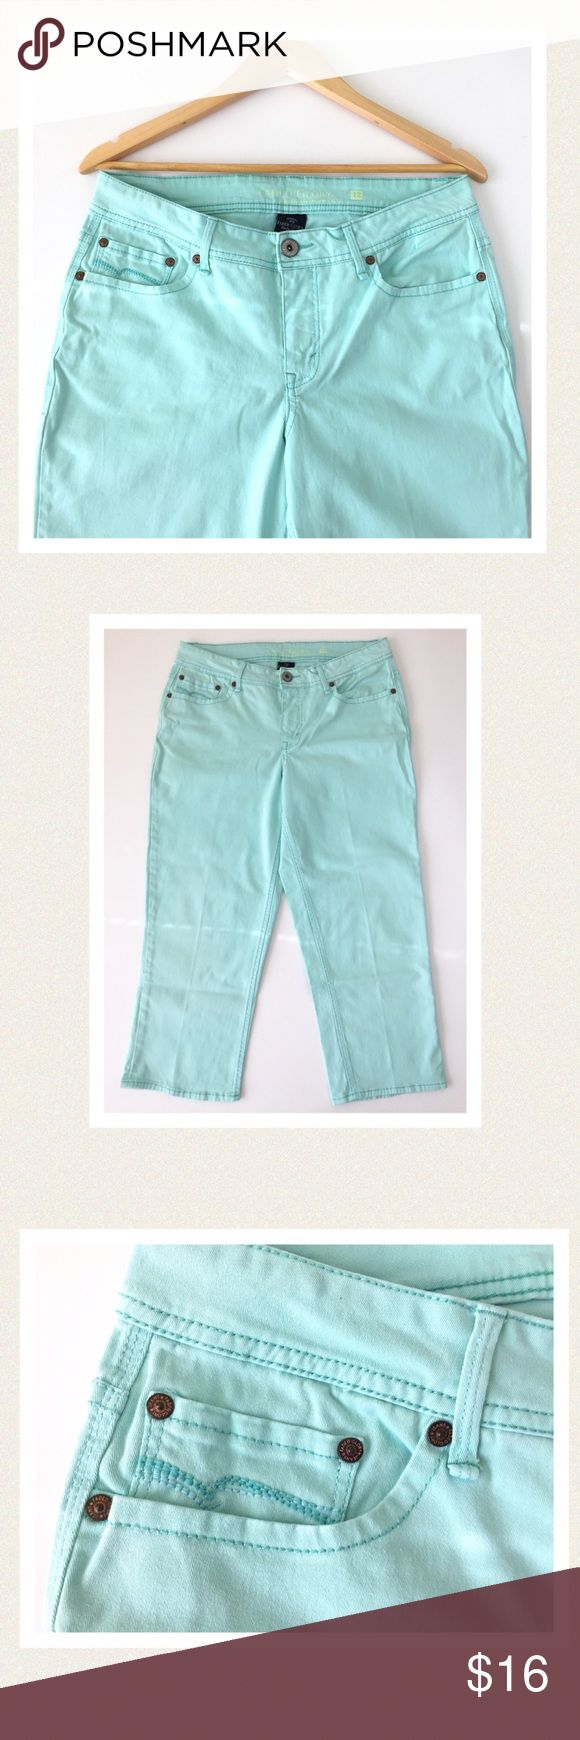 """🆕 Aqua blue cropped jeans Soft, comfy cotton/spandex blend. Detailed stitching on front and back pockets. Zips in front. Excellent condition. One tiny pinhead sized spot on inside right leg near seam (see photo). 🔹waist 34"""" 🔹hips 39"""" 🔹front rise 10"""" 🔹inseam 23"""" All measurements are approximate Faded Glory Jeans Ankle & Cropped"""